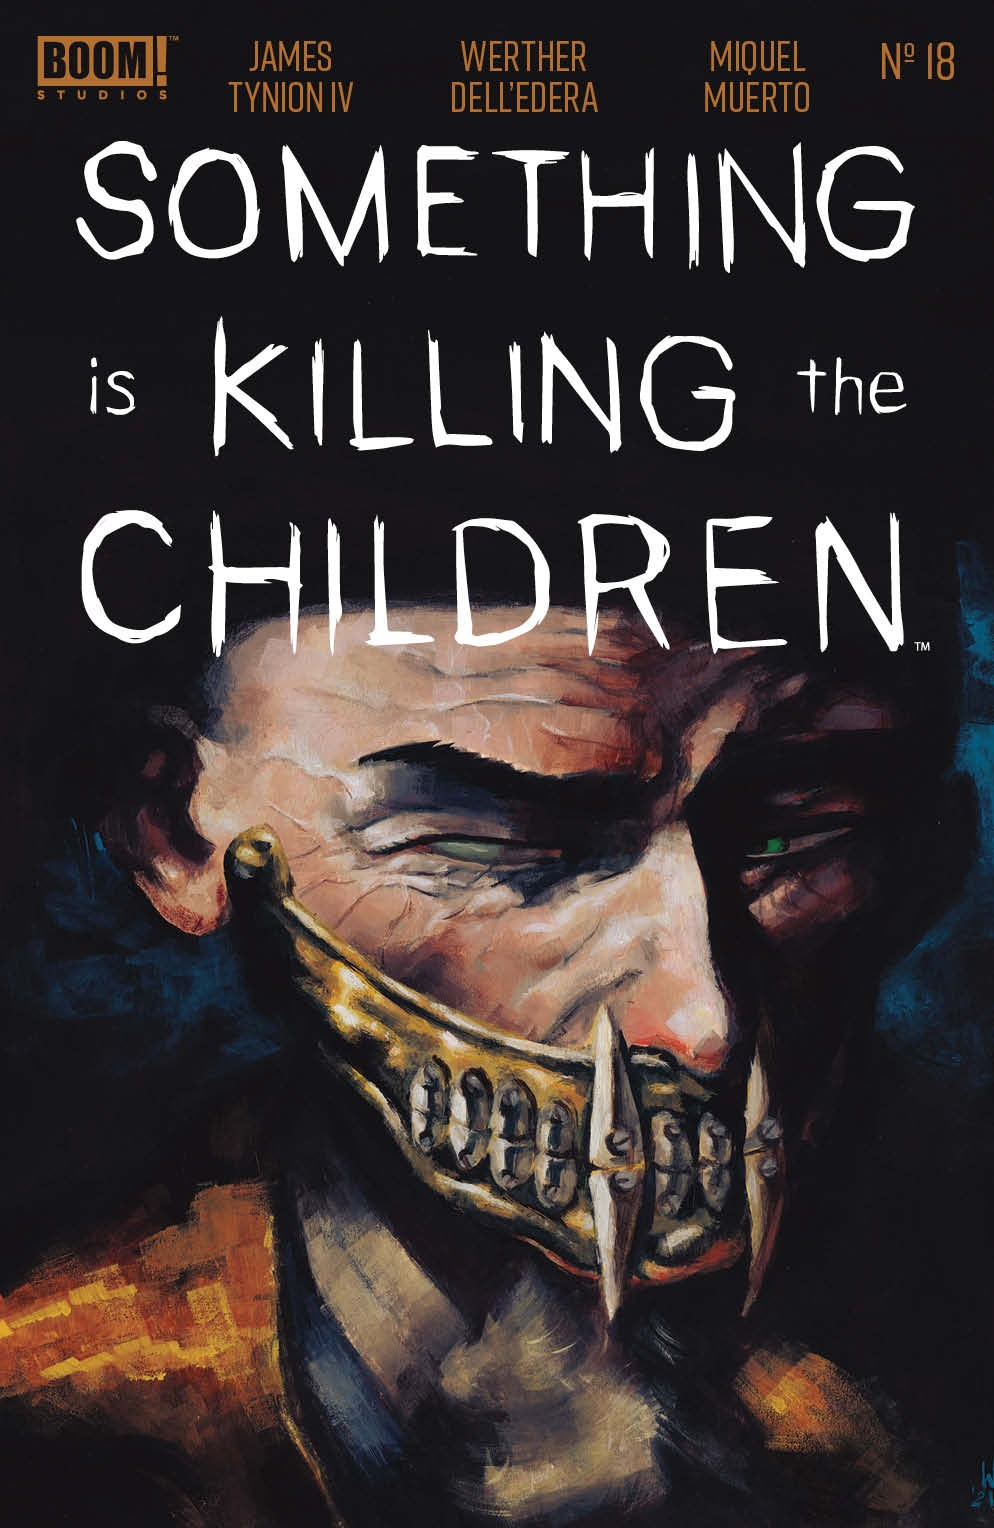 SomethingKillingChildren_018_Cover_A_Main ComicList Previews: SOMETHING IS KILLING THE CHILDREN #18